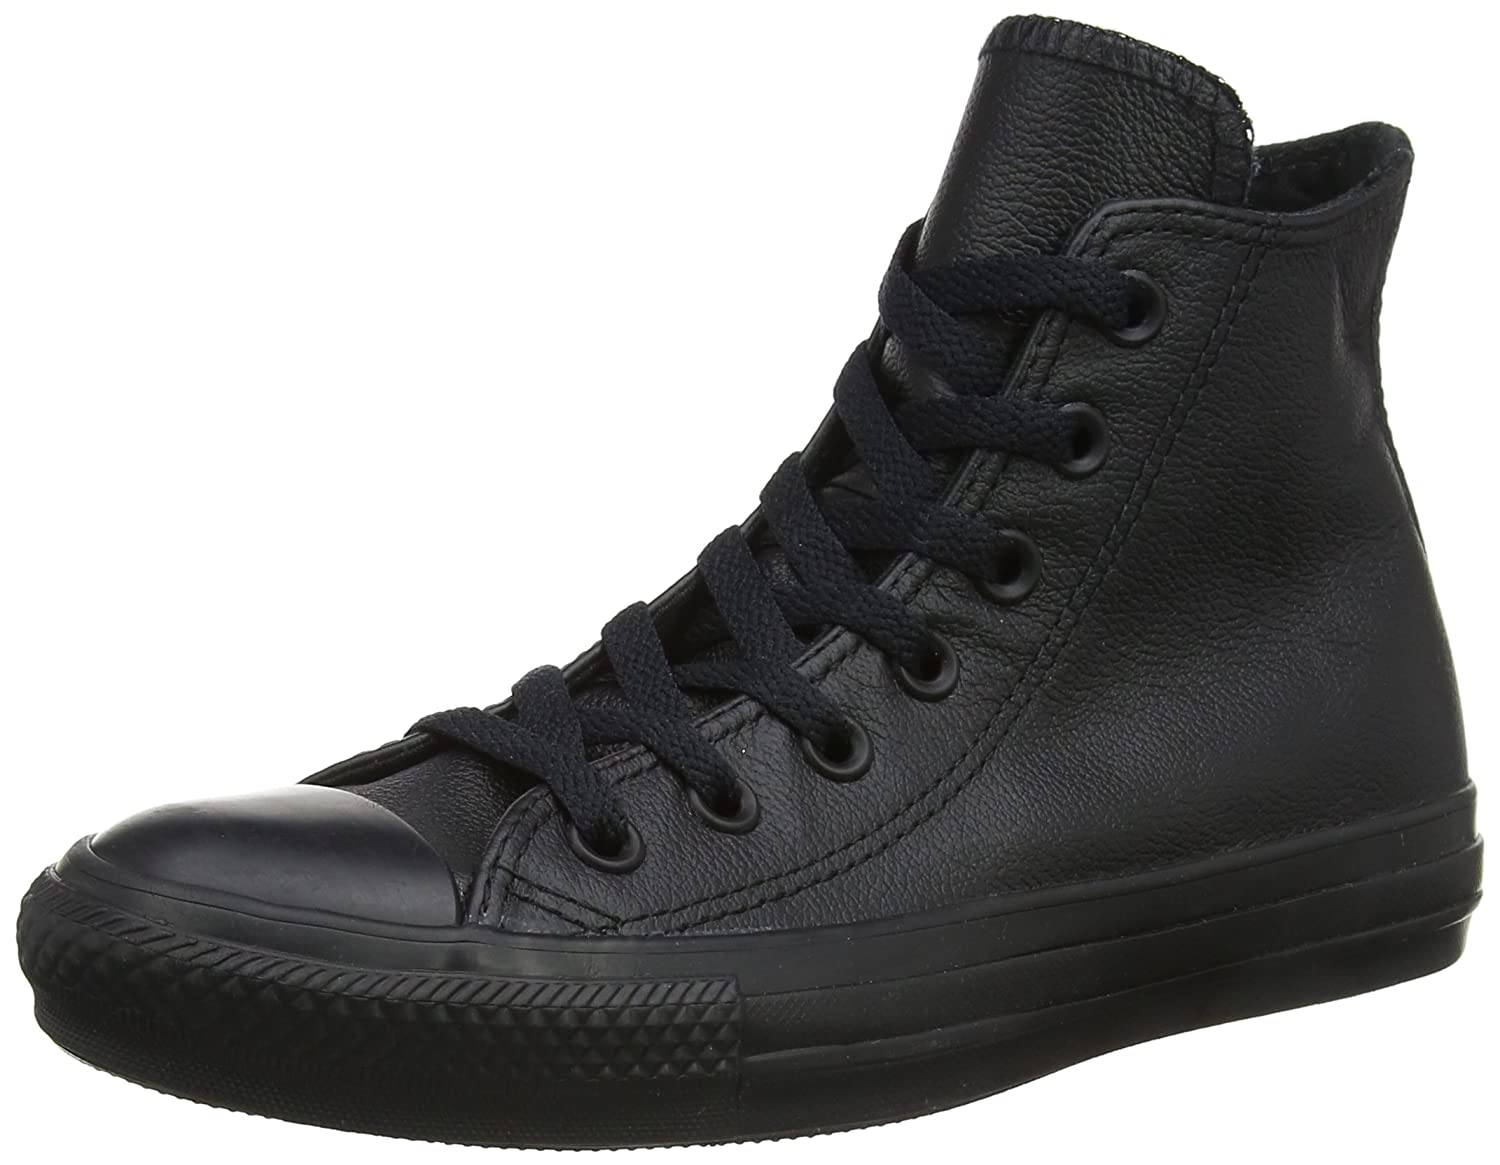 Converse Chuck Taylor All Star Leather High Top Sneaker B0778XDVK6 43 M EU / 11.5 B(M) US Women / 9.5 D(M) US Men|Black Mono